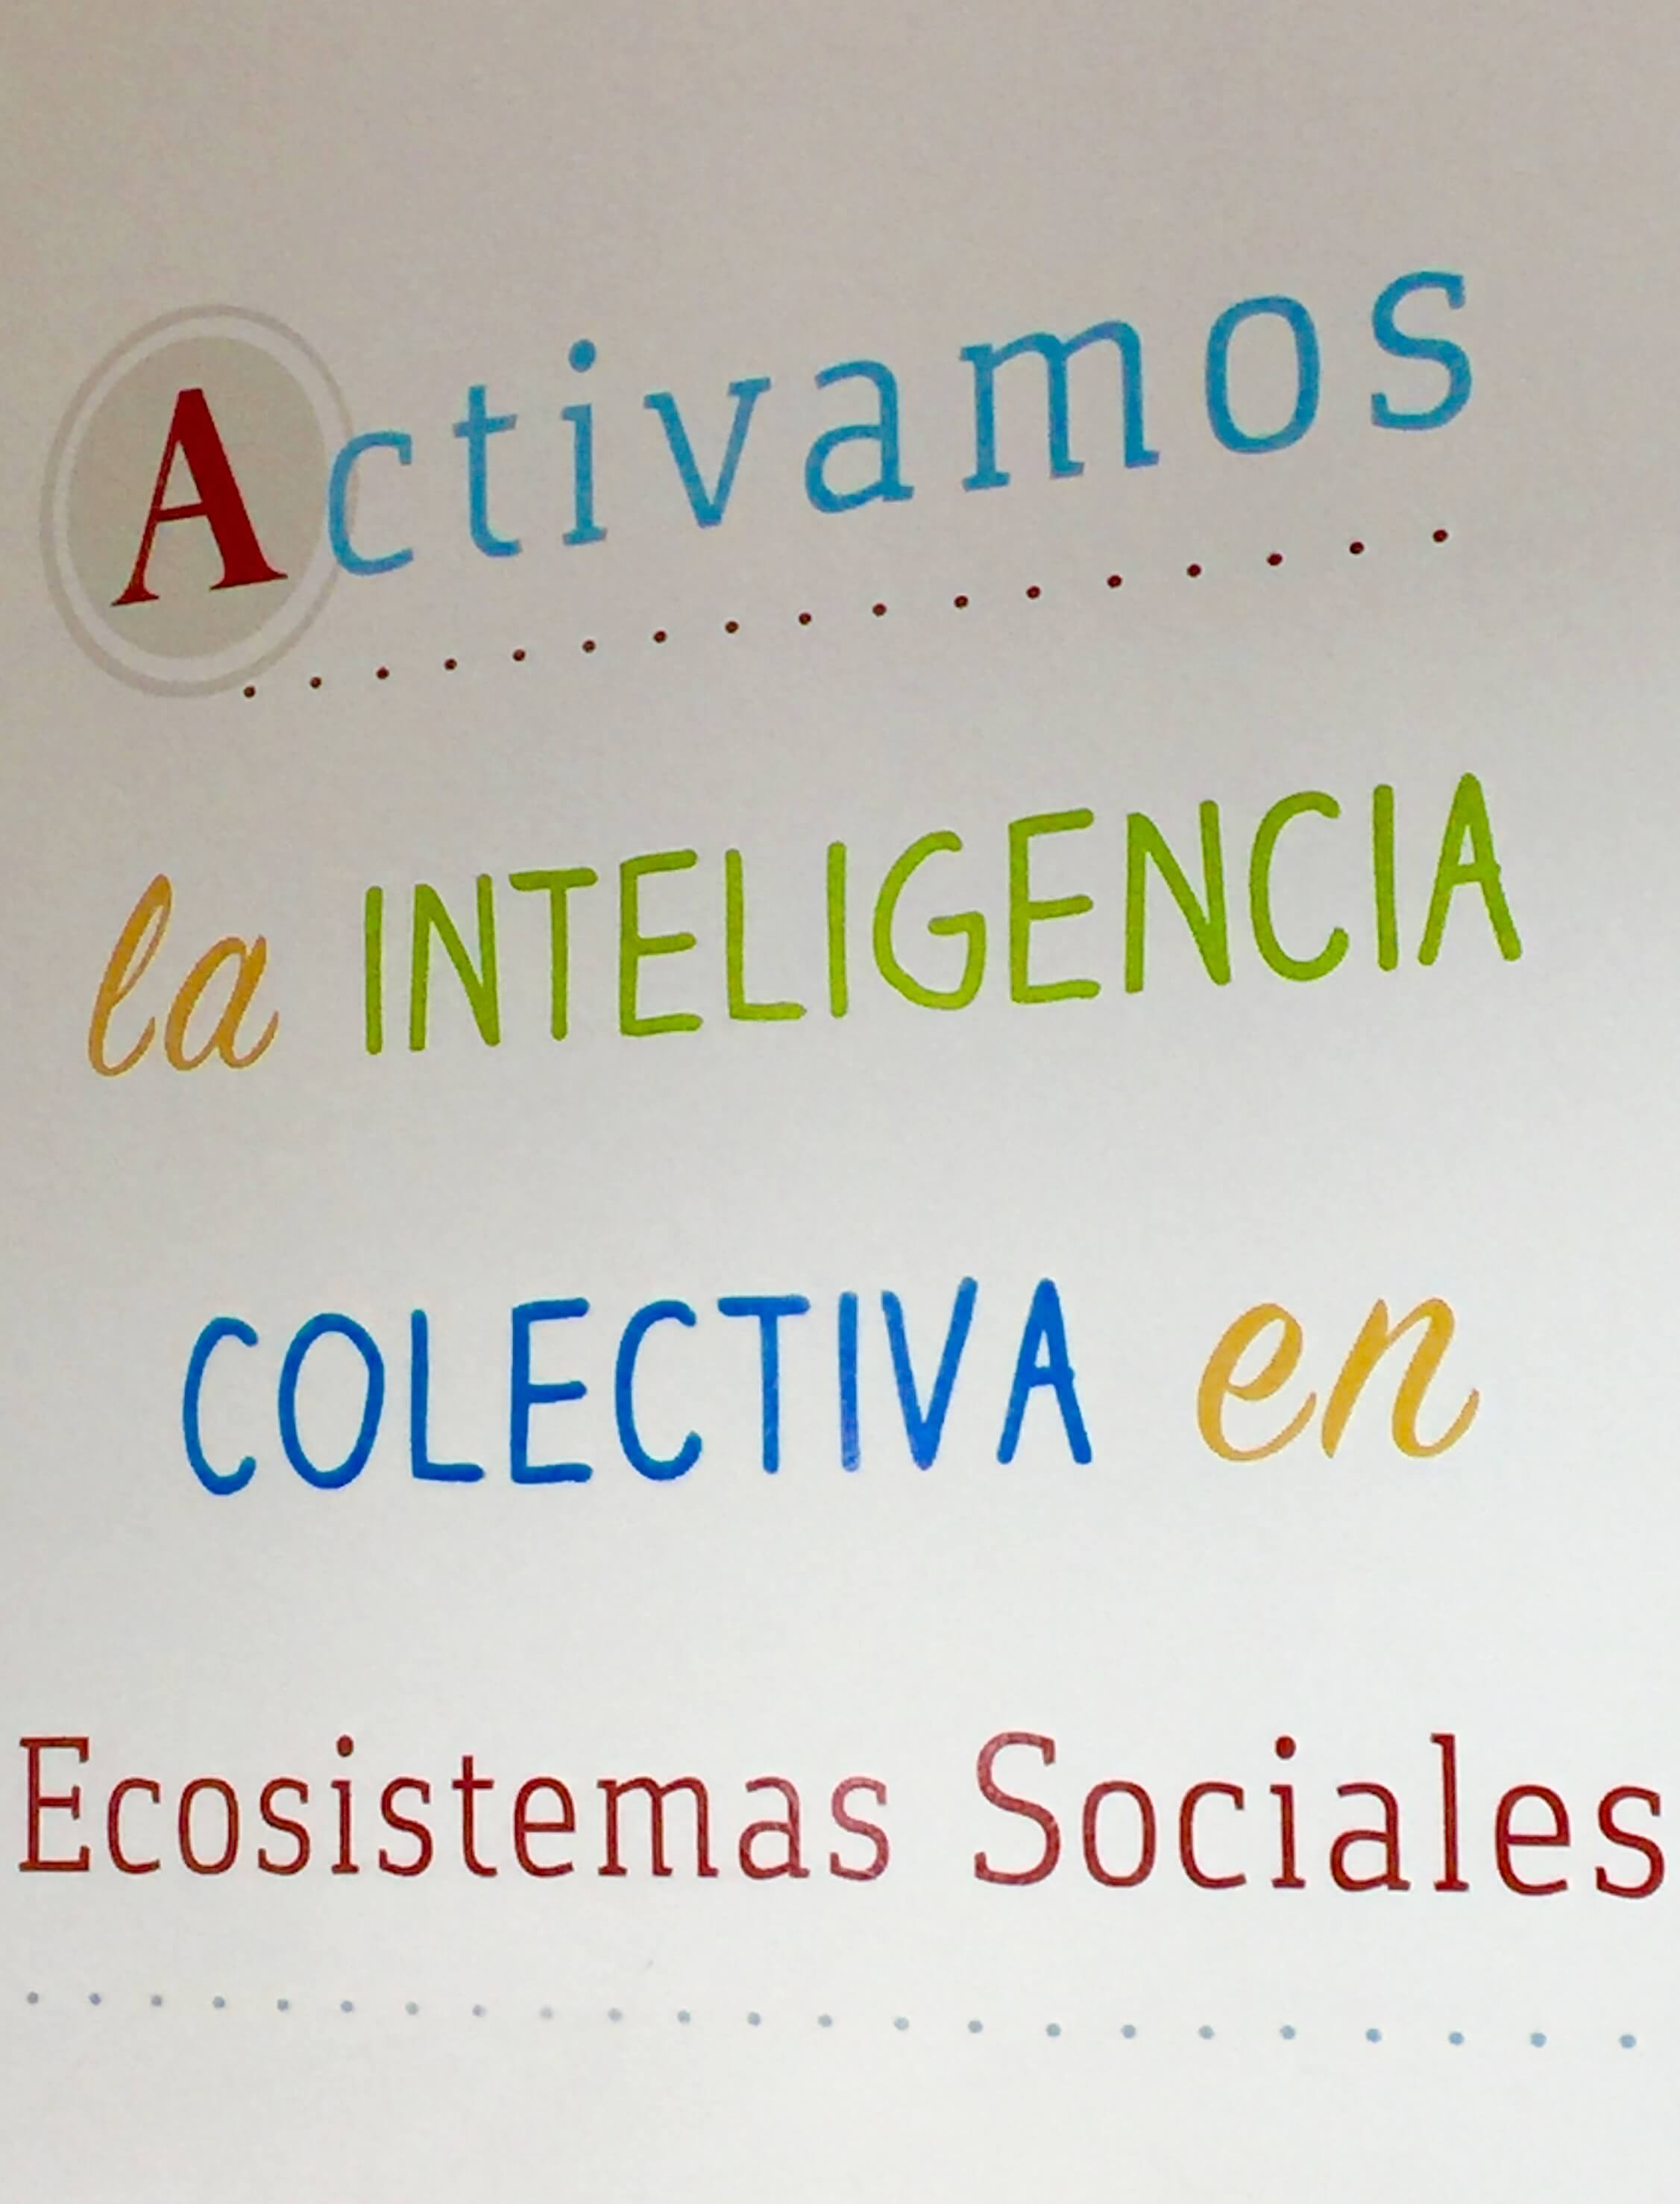 Quote: ' we activate collective intelligence in social ecosystems""